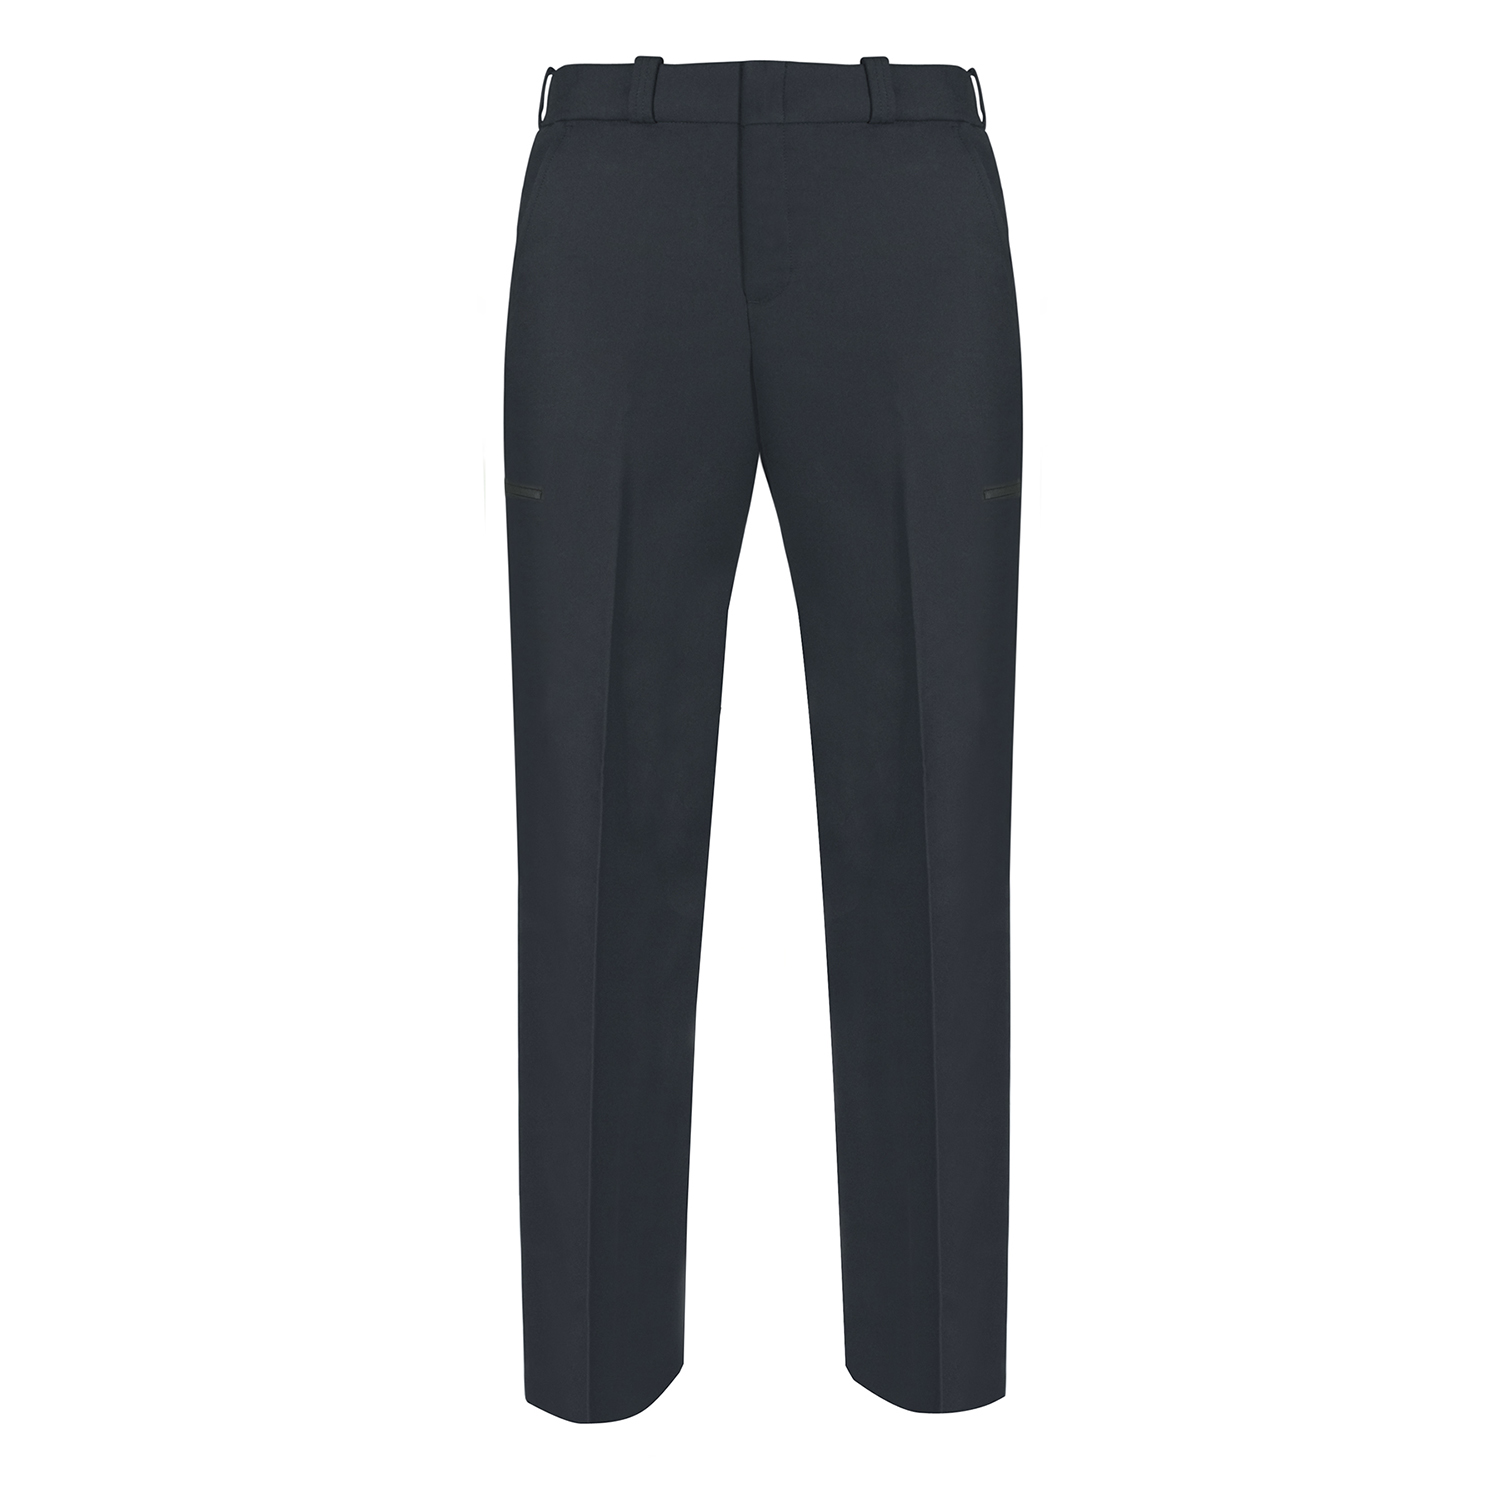 Elbeco Dutymaxx Hidden Cargo Pants Women's